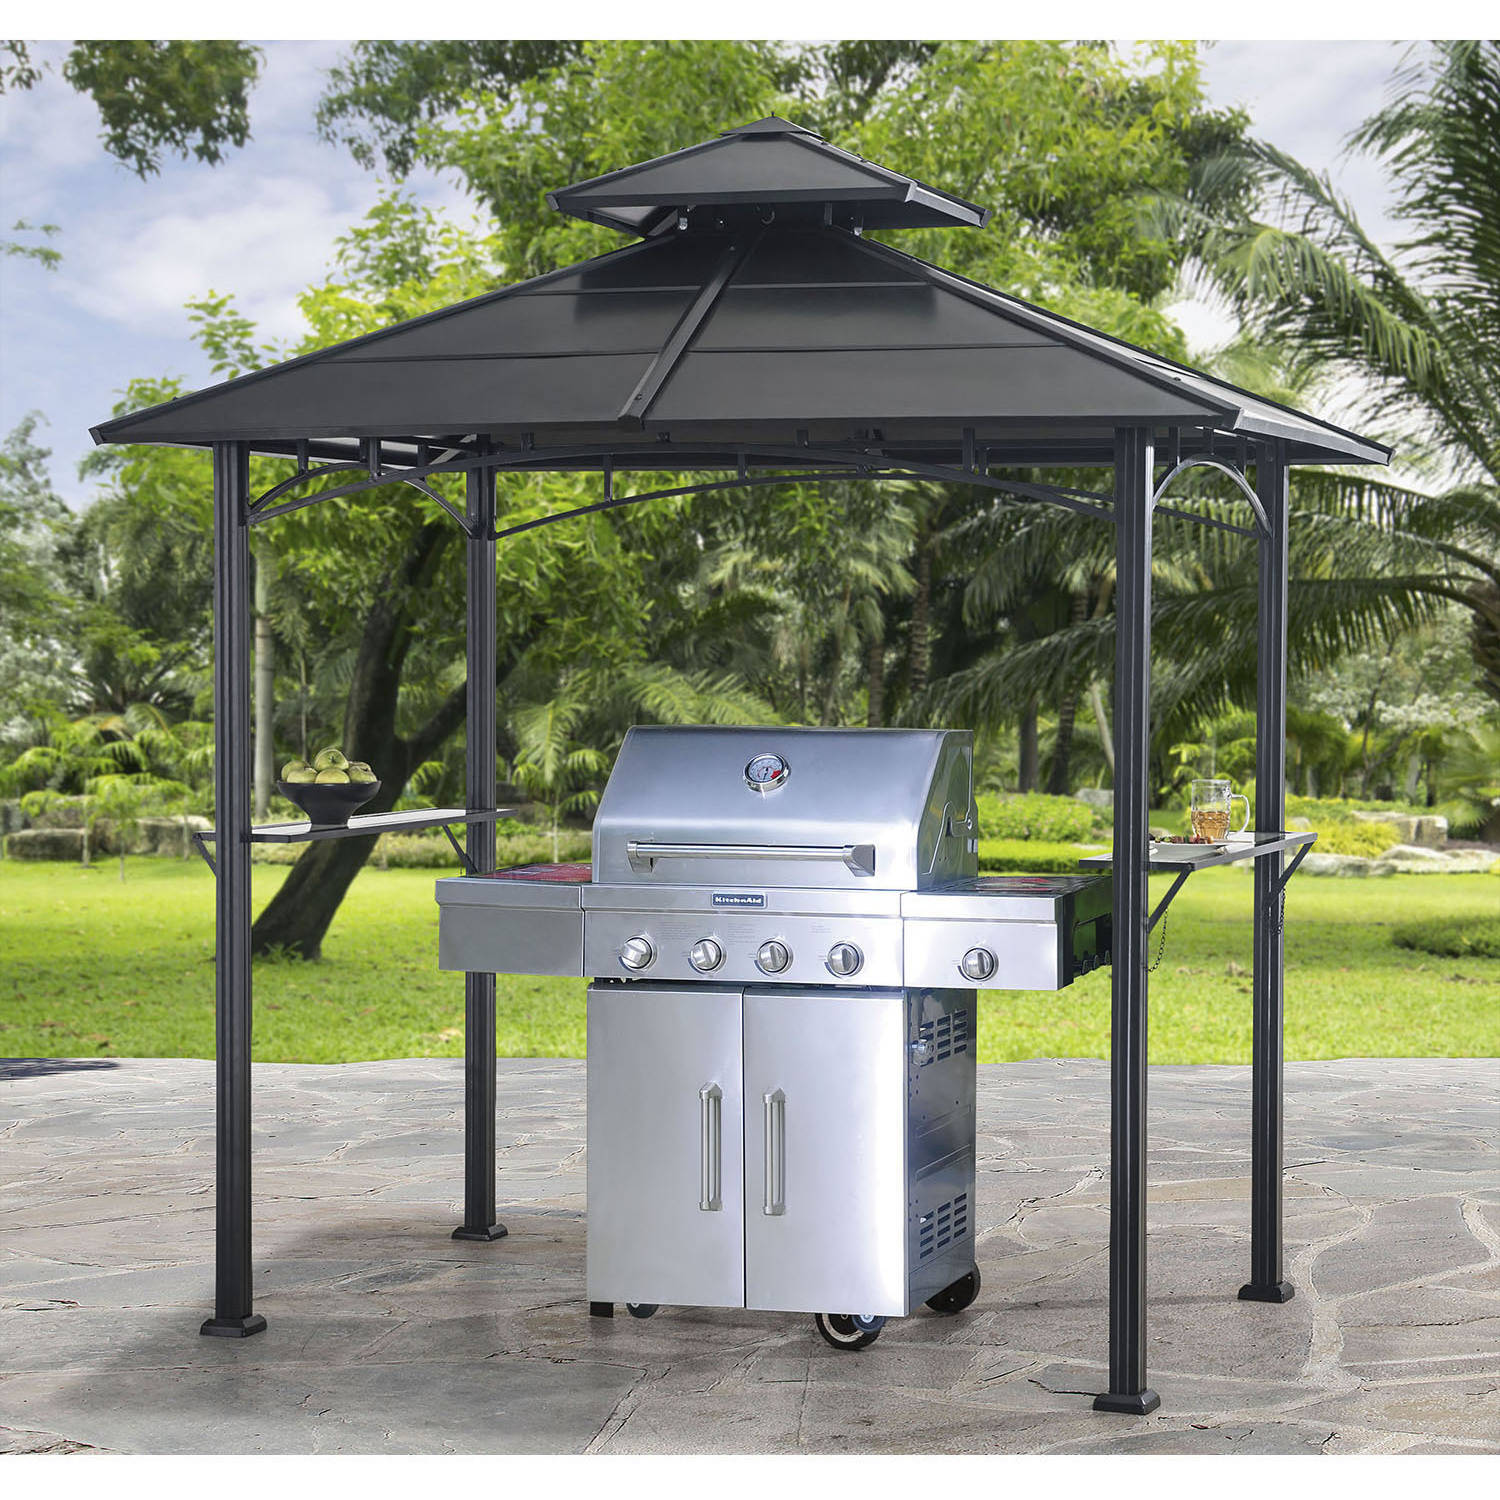 Charming sunjoy gazebo for garden ideas with sunjoy hardtop gazebo and sunjoy grill gazebo